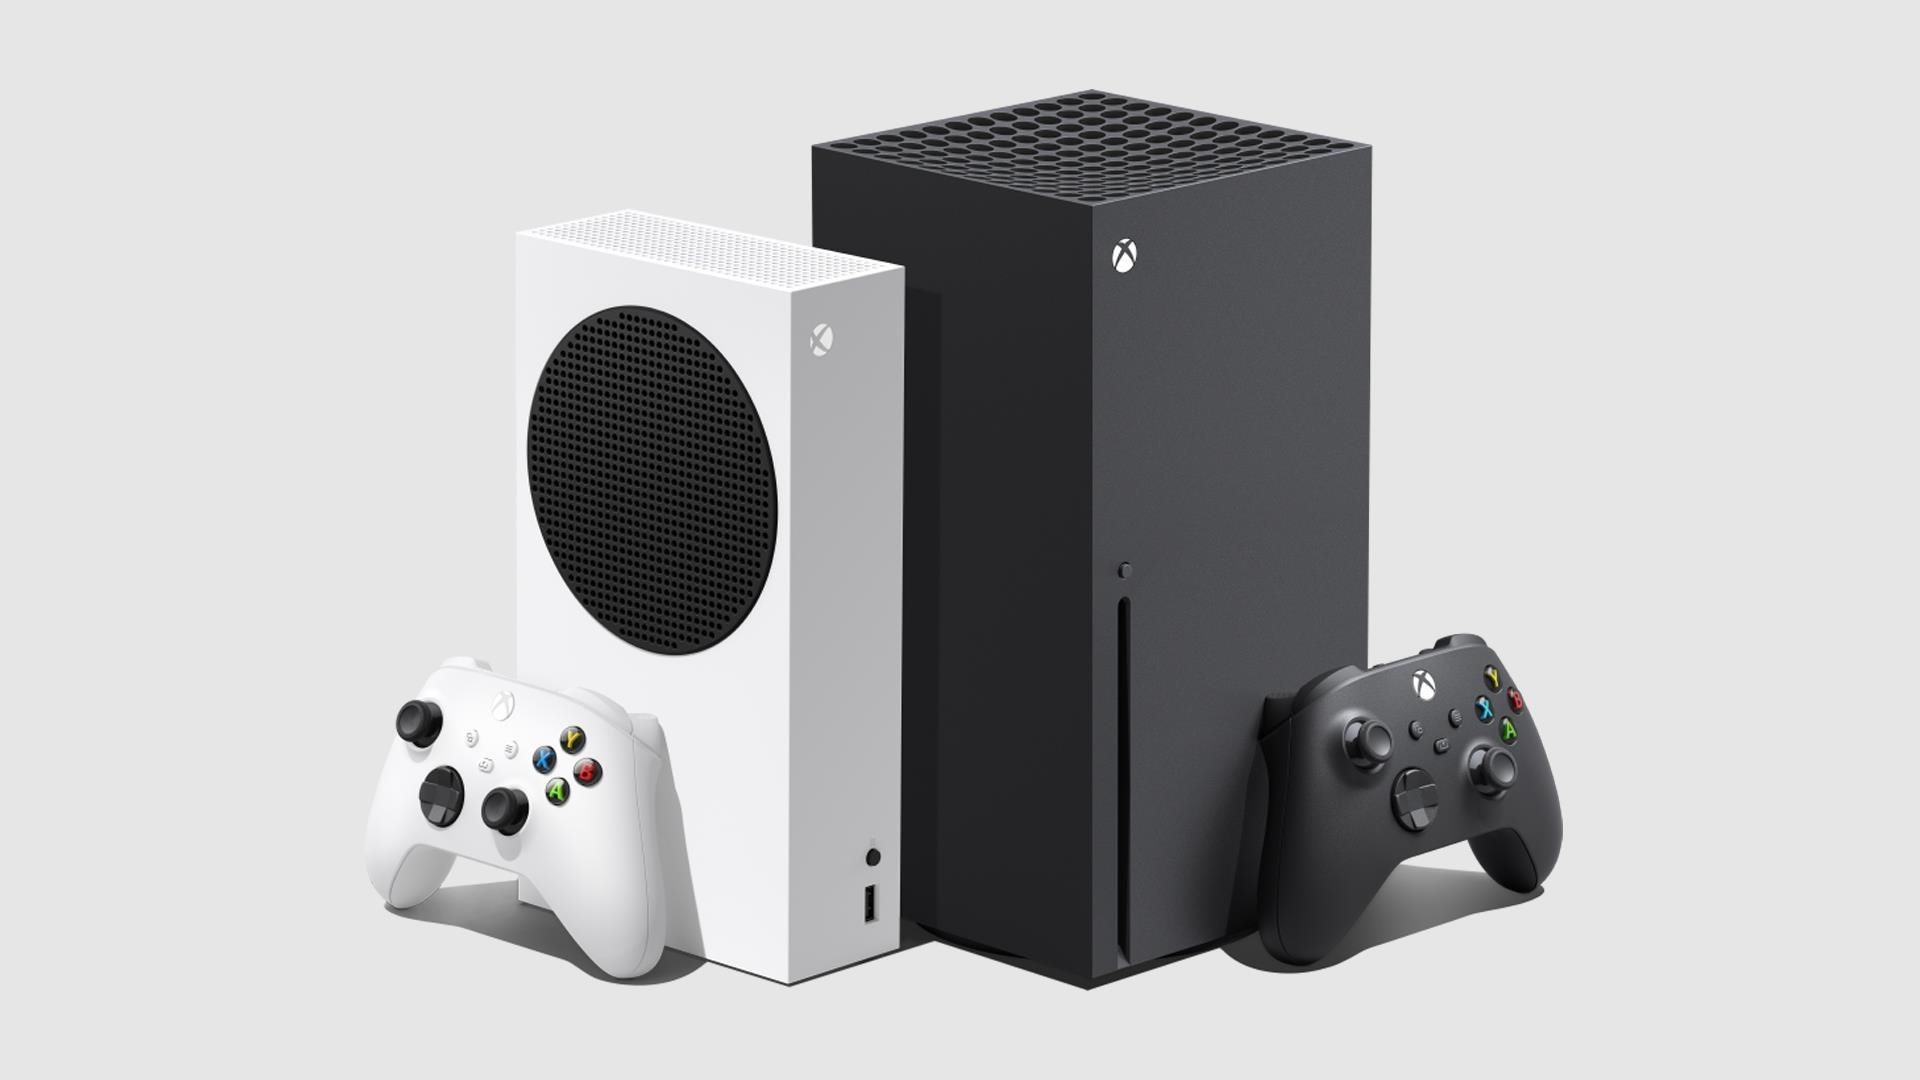 Xbox Series X|S console shortage could last until at least June 2021